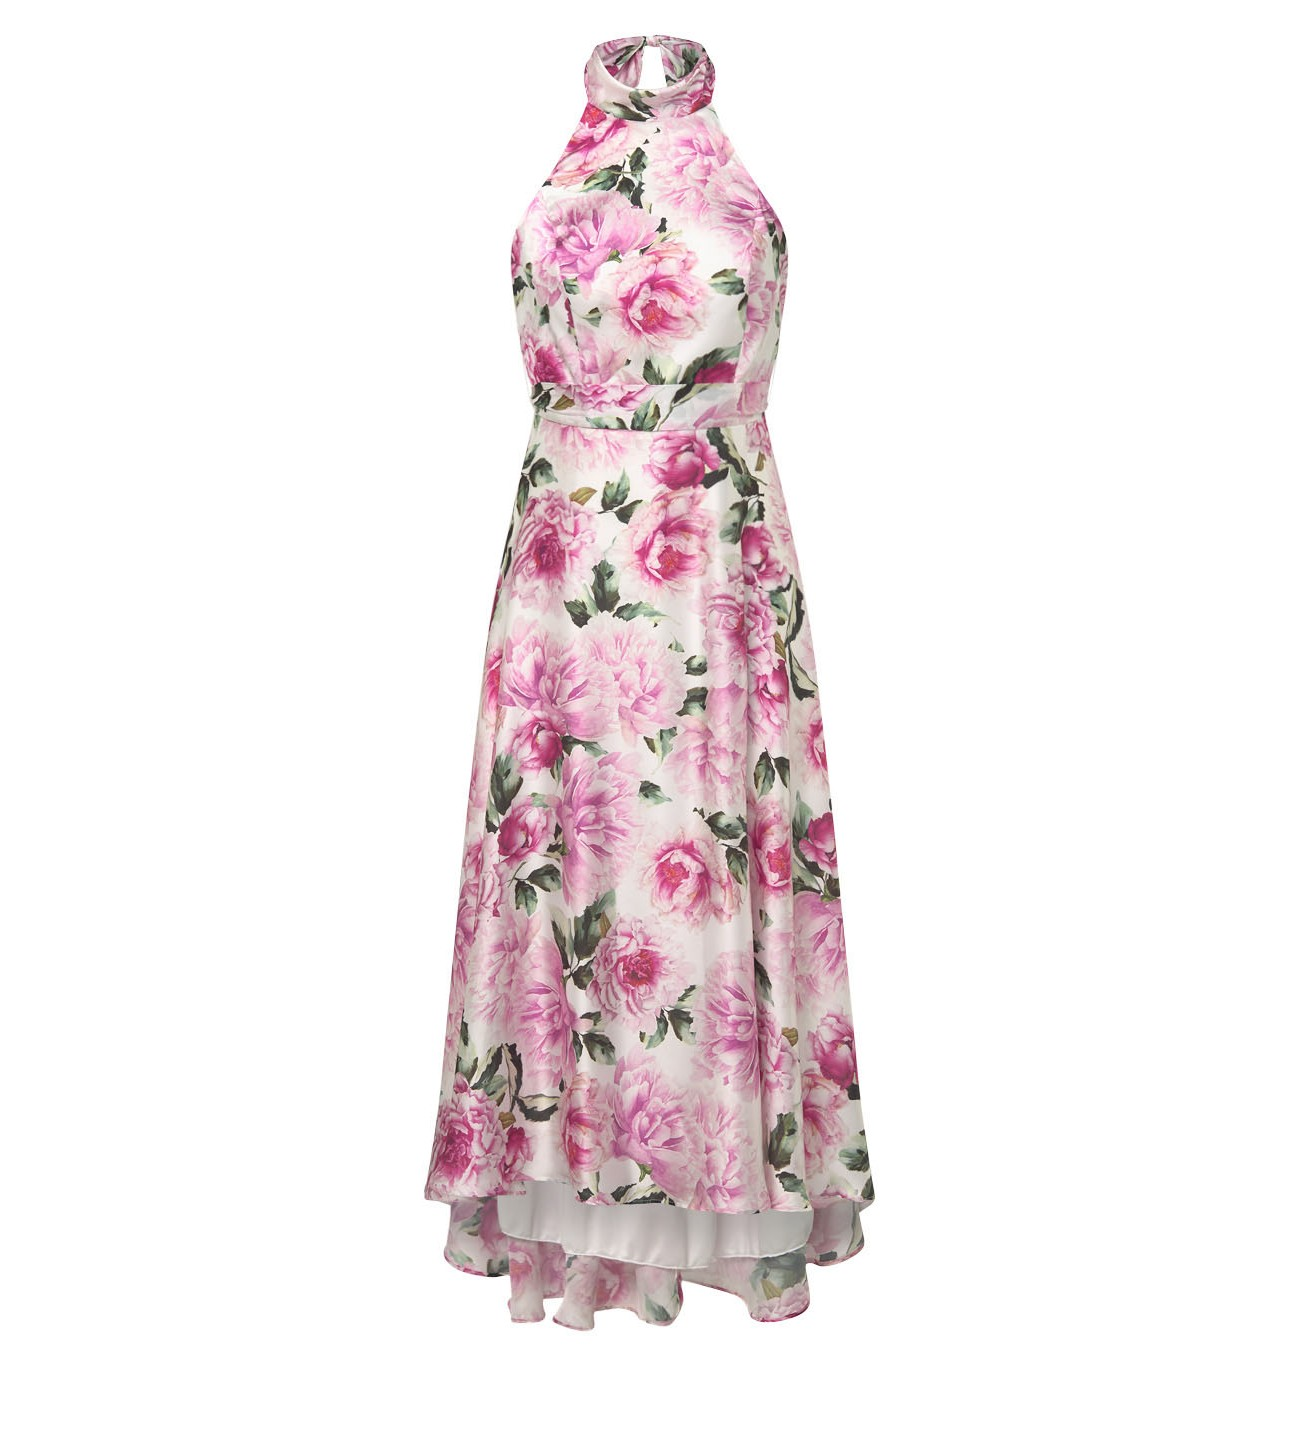 MASS_FLOWER_PRINT_ANKLE_LENGHT_DRESS_MARIONA_FASHION_CLOTHING_WOMAN_SHOP_ONLINE_L530